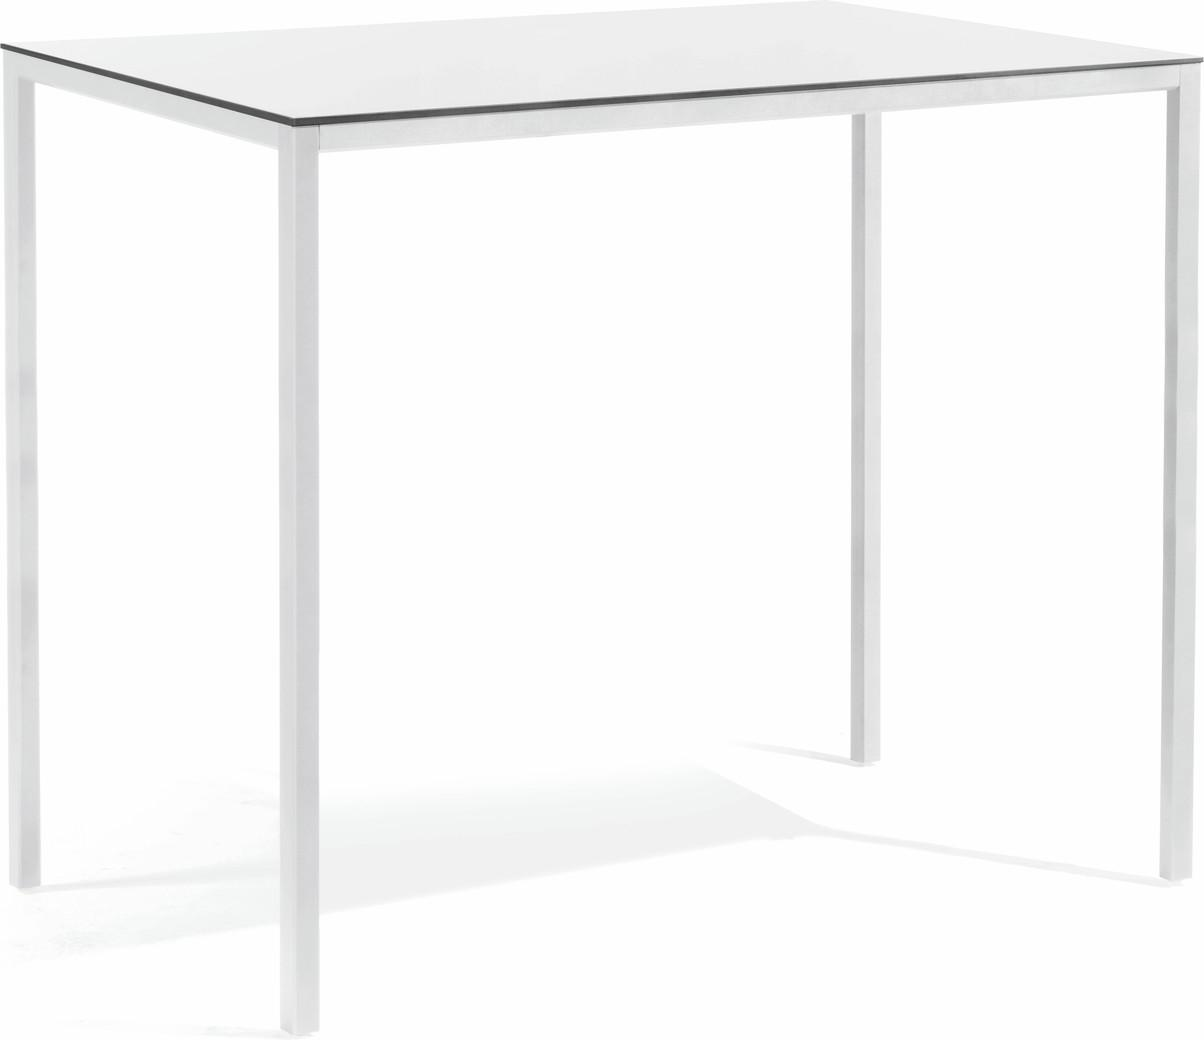 Table à manger haute Quarto - blanc - verre blanc 130